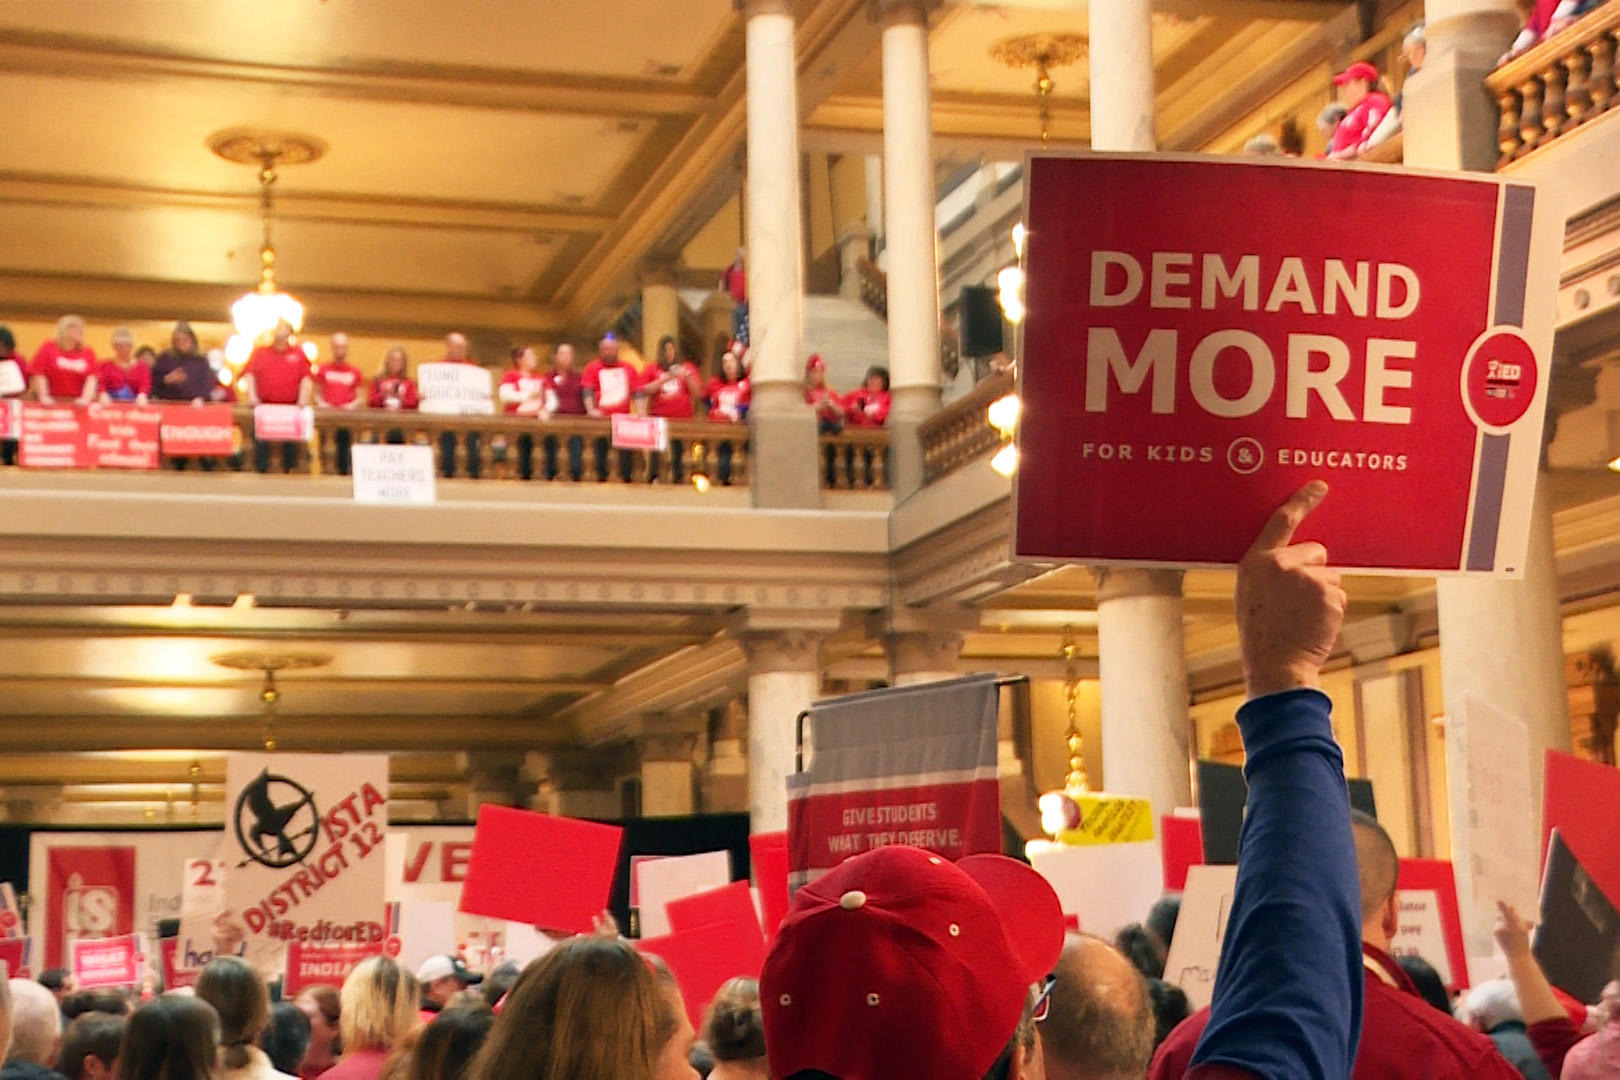 A man holds a red Demand More sign above a crowd at the Indiana Statehouse